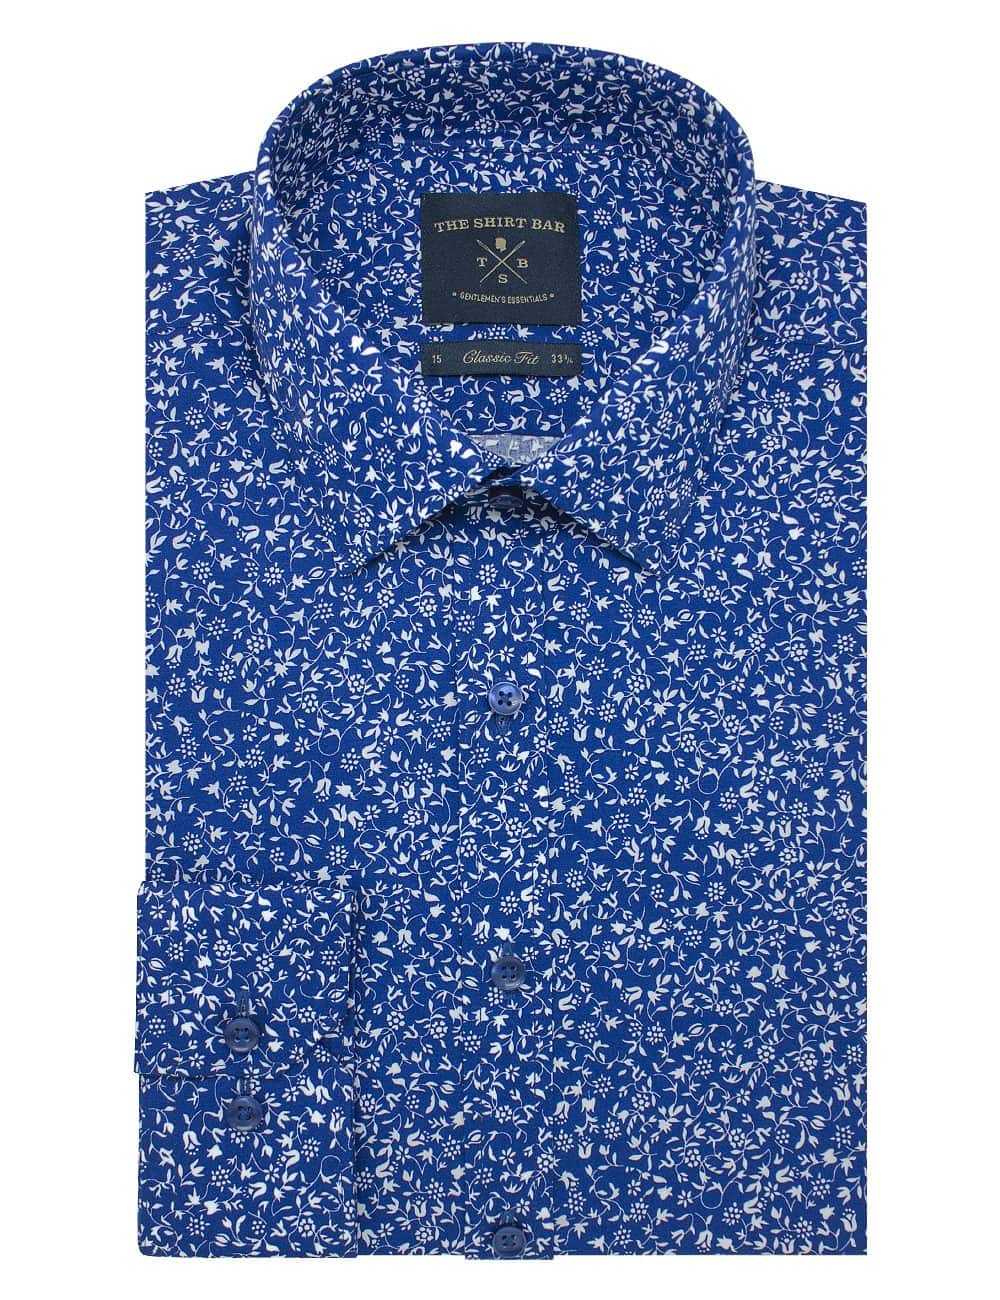 Navy with White Floral Print Modern / Classic Fit Long Sleeve Shirt – CF2A23.17